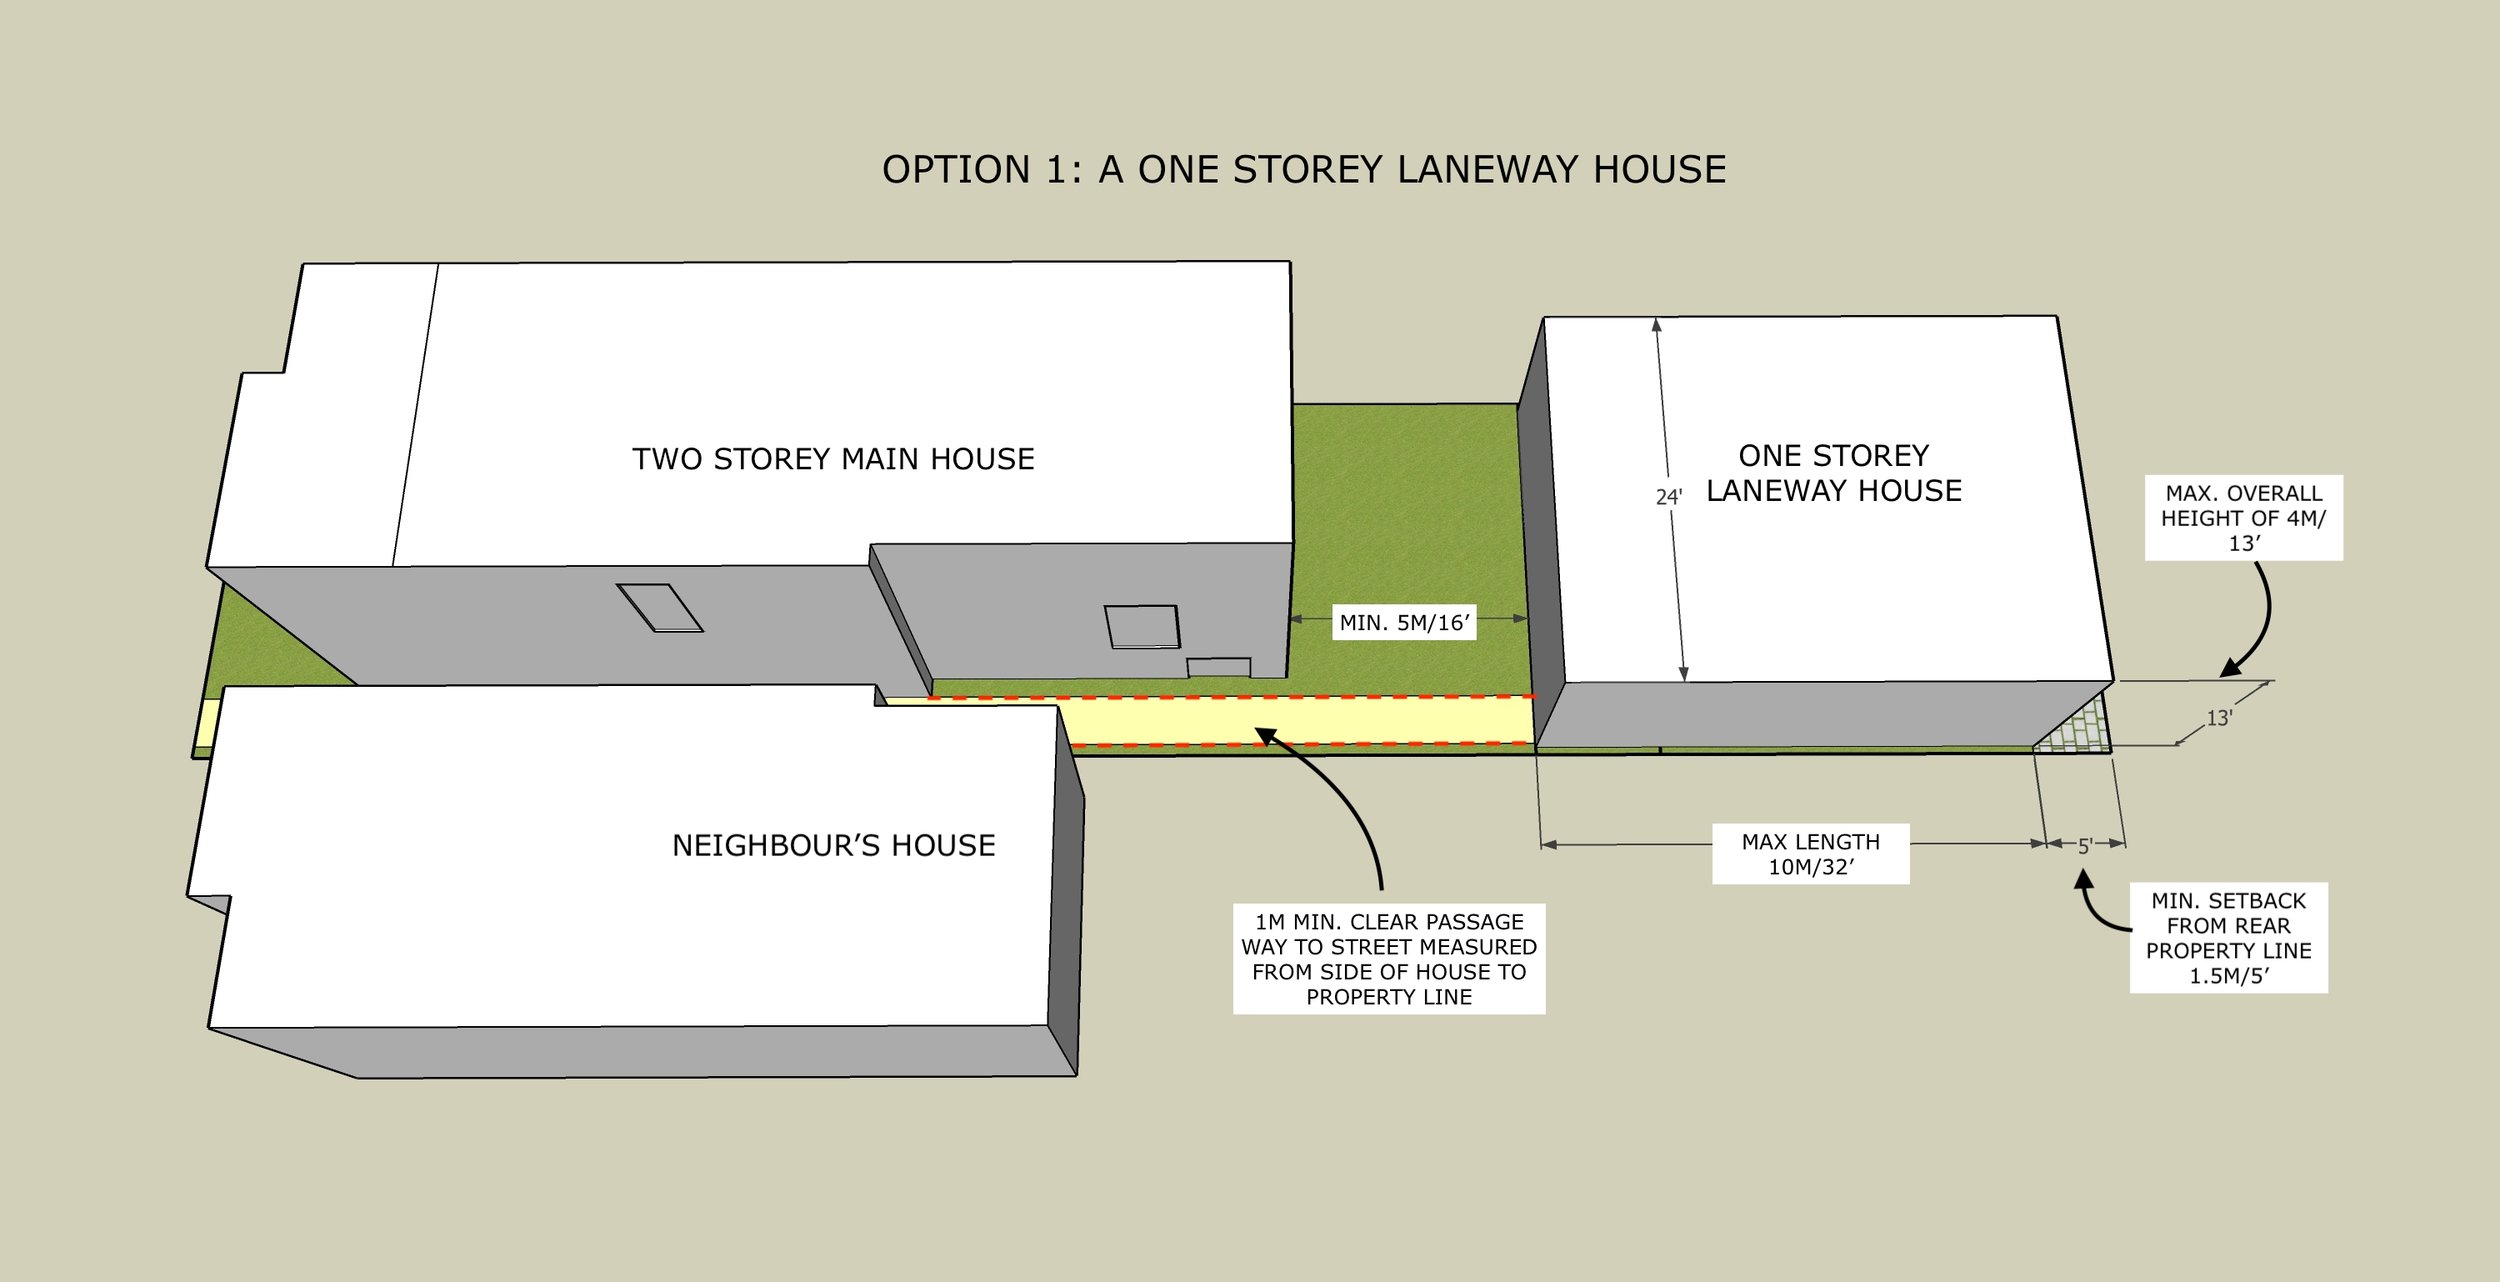 Sketch showing the maximum size for a one storey laneway suite on a sample property.